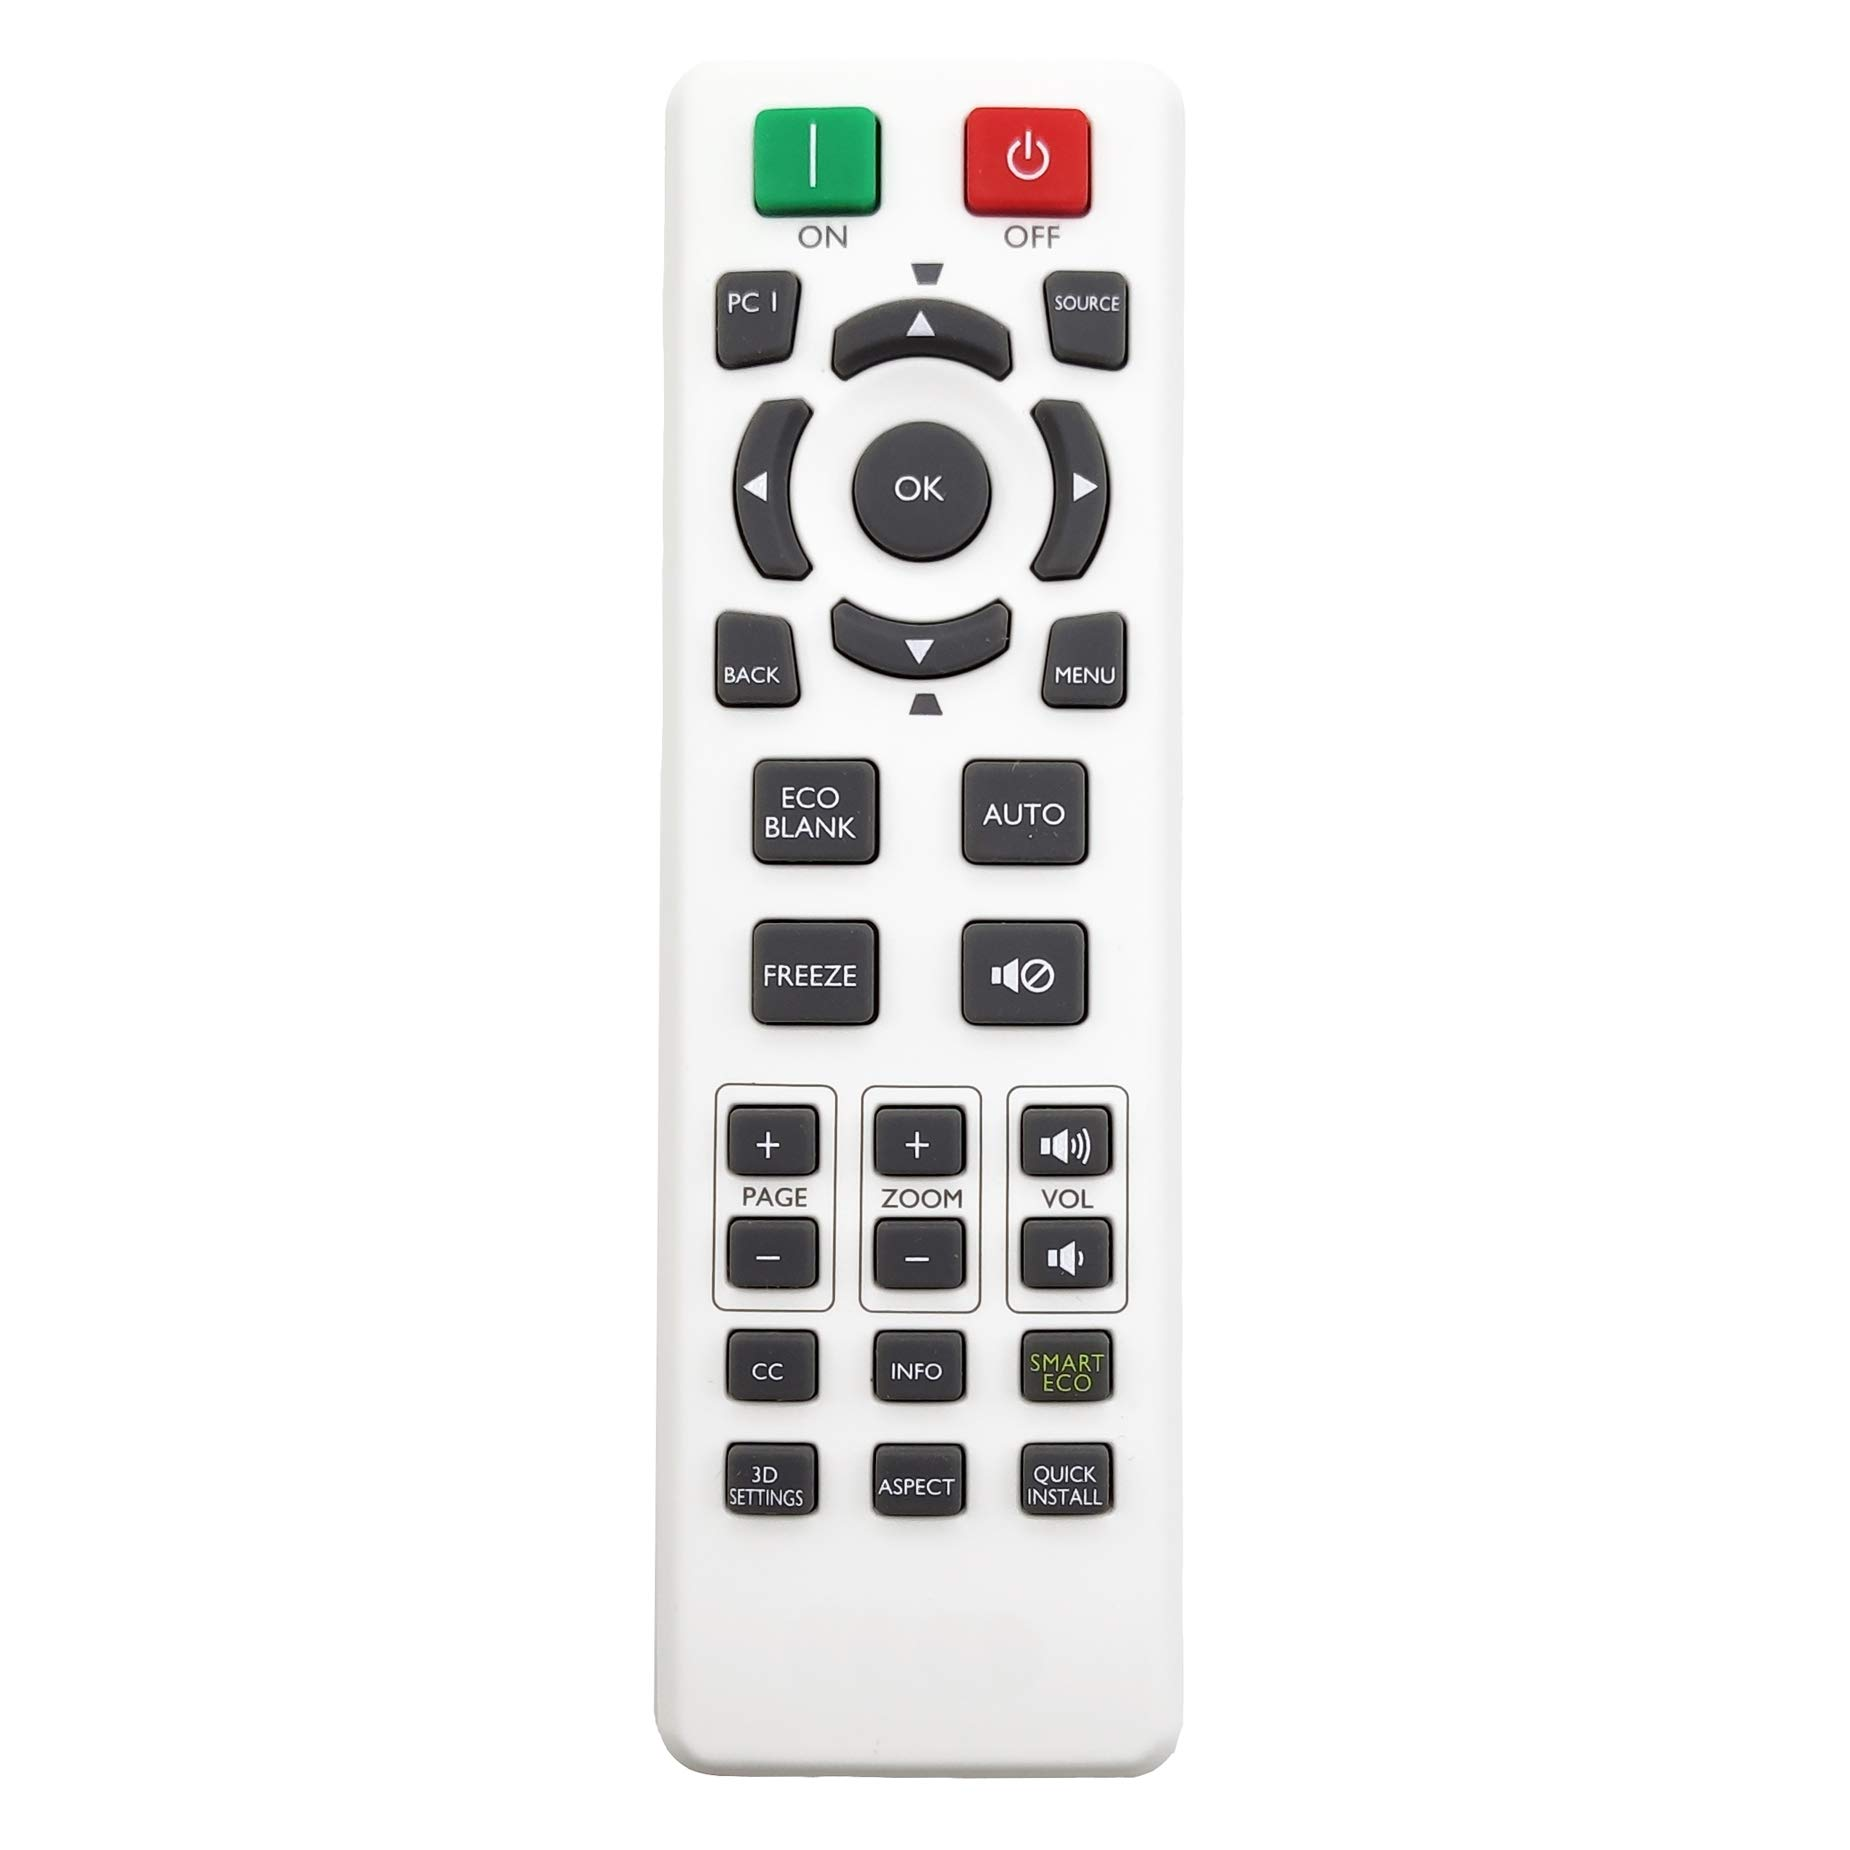 InTeching 5J.JG706.001 Projector Remote Control for BenQ RCX013, MH530FHD, MH534, MH606w, MS521H, MS524AE, MS531P, MW526AE, MW533, MW605w, MX532P, MX604, MX604w, TH534, TW533, MS535A, MW535A, MH5353A by INTECHING